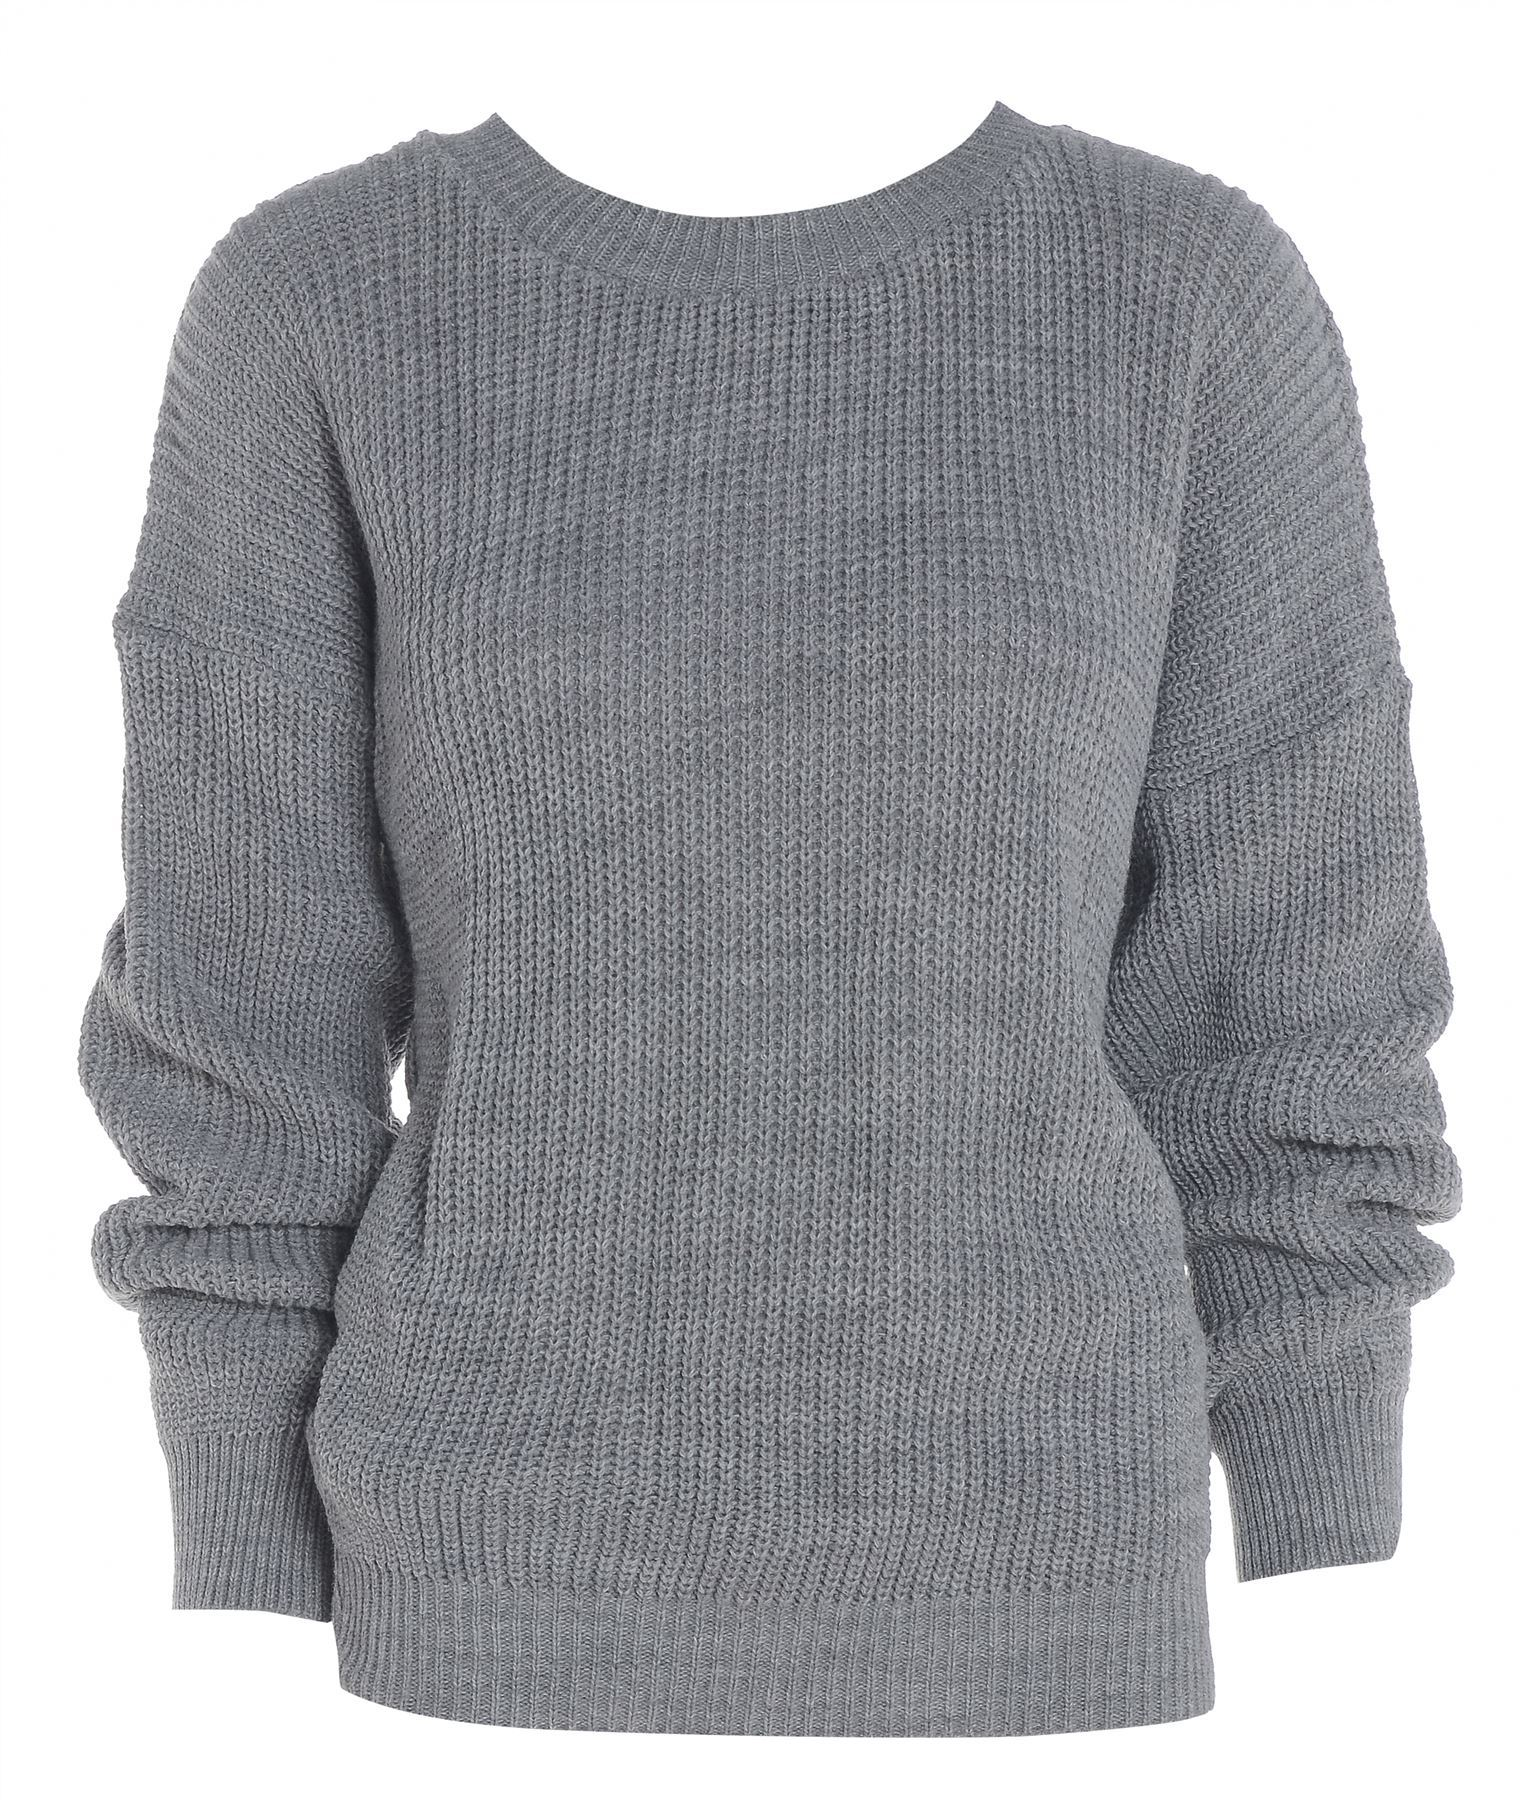 New Ladies Womens Oversized Chunky Sweater Baggy Knitted ...